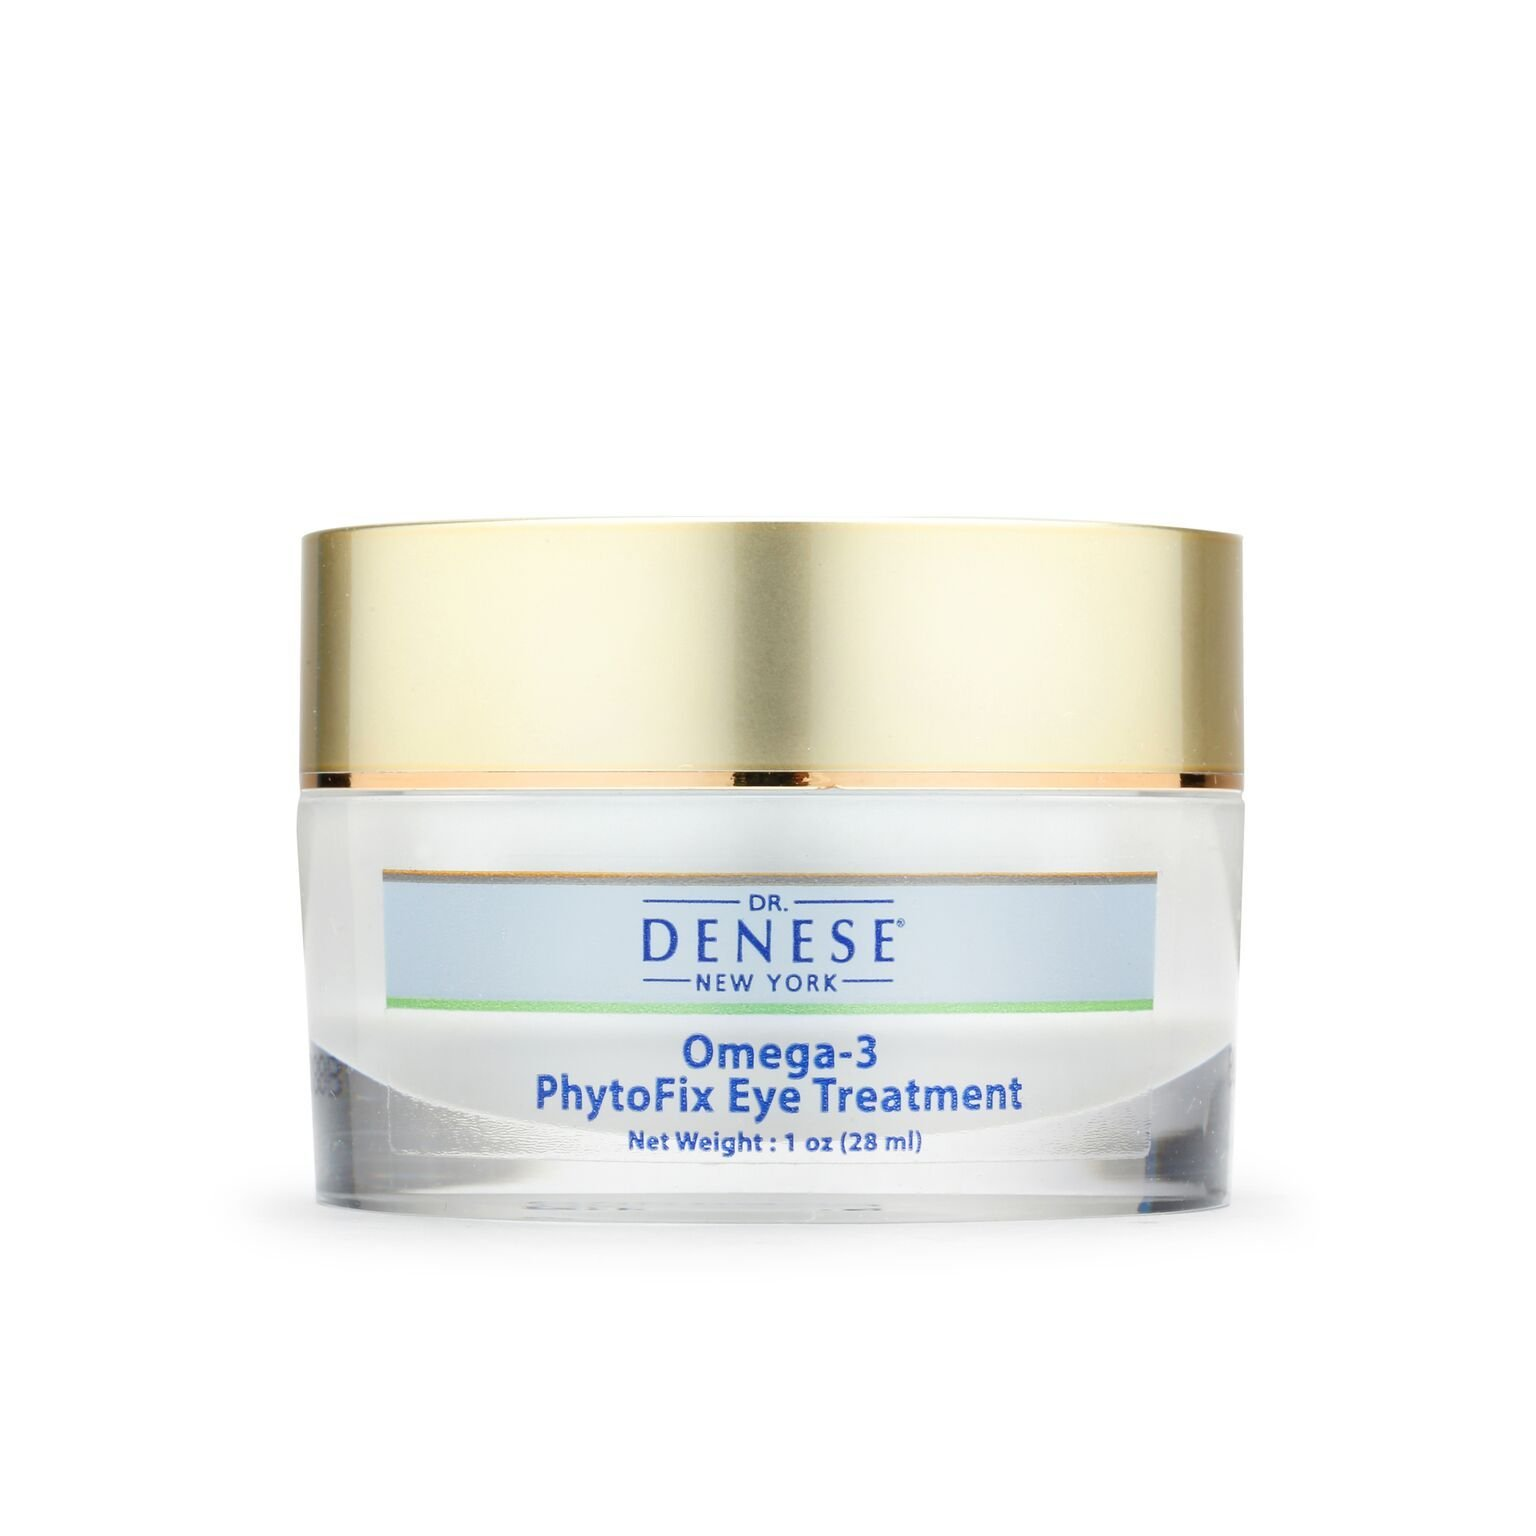 Dr. Denese Omega-3 PhytoFix Eye Treatment (1 OZ)